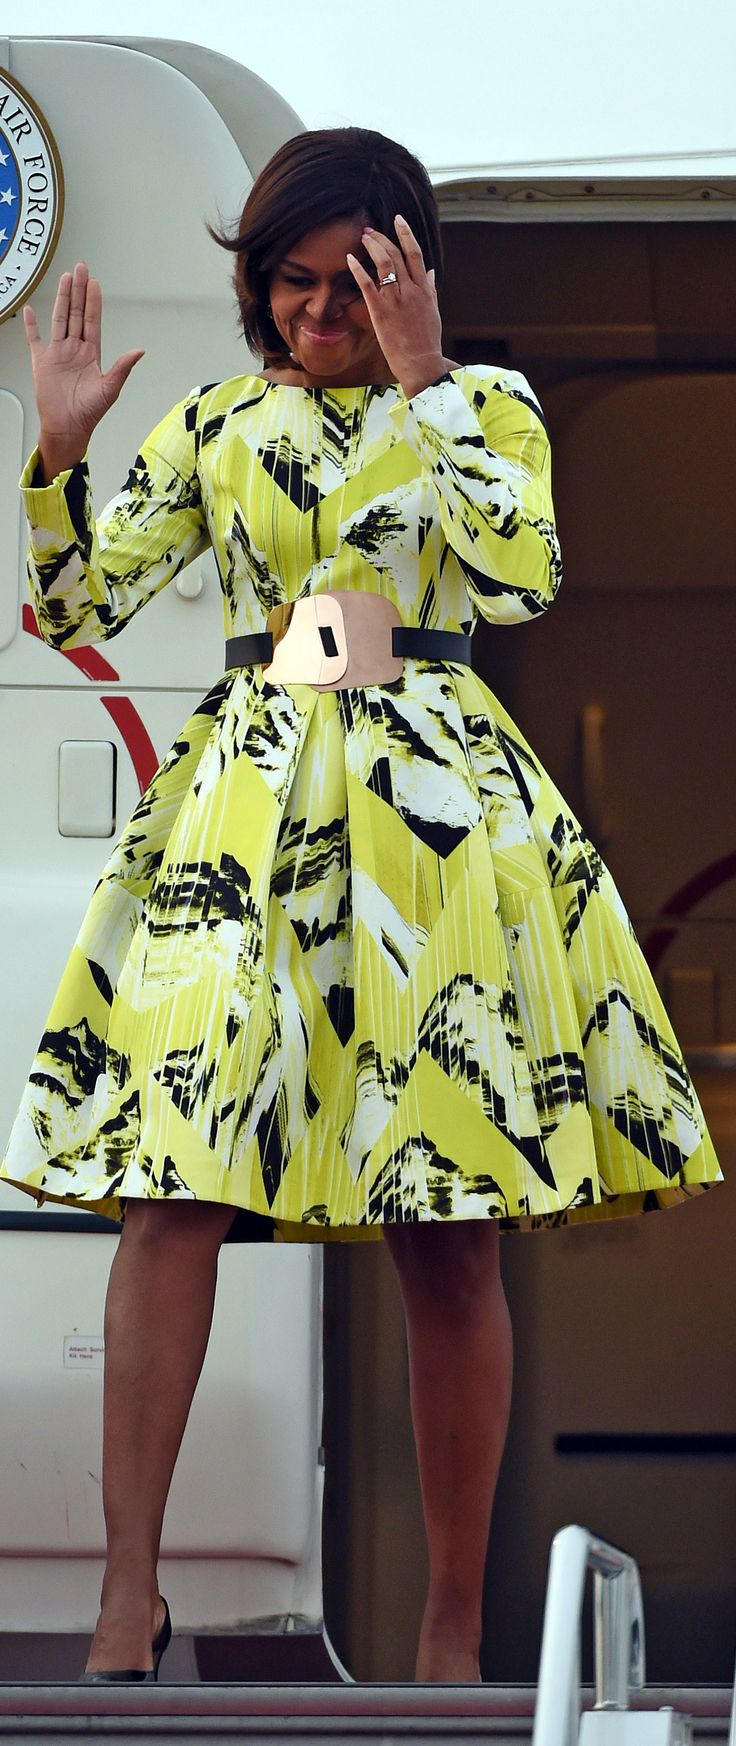 Michelle Obama arrives in Tokyo wearing an electric chartreuse Fall 2014 Kenzo dress, cinched at the waist with a Roksanda Ilincic belt 3.18.2015